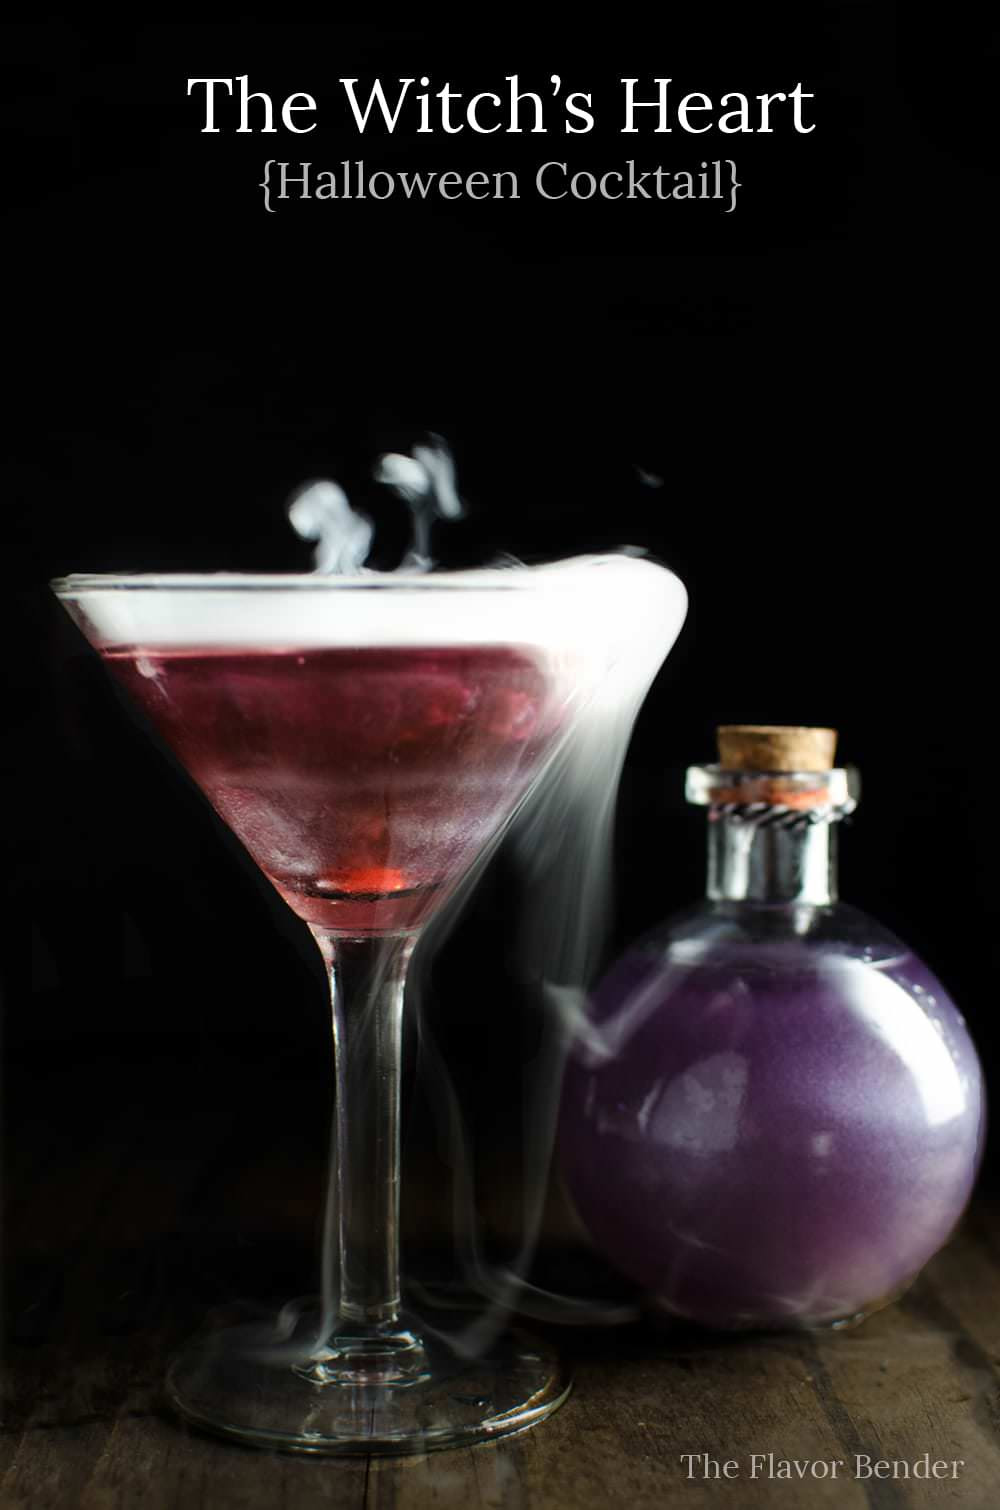 Halloween Cocktail Drinks  The Witch s Heart Halloween Cocktail